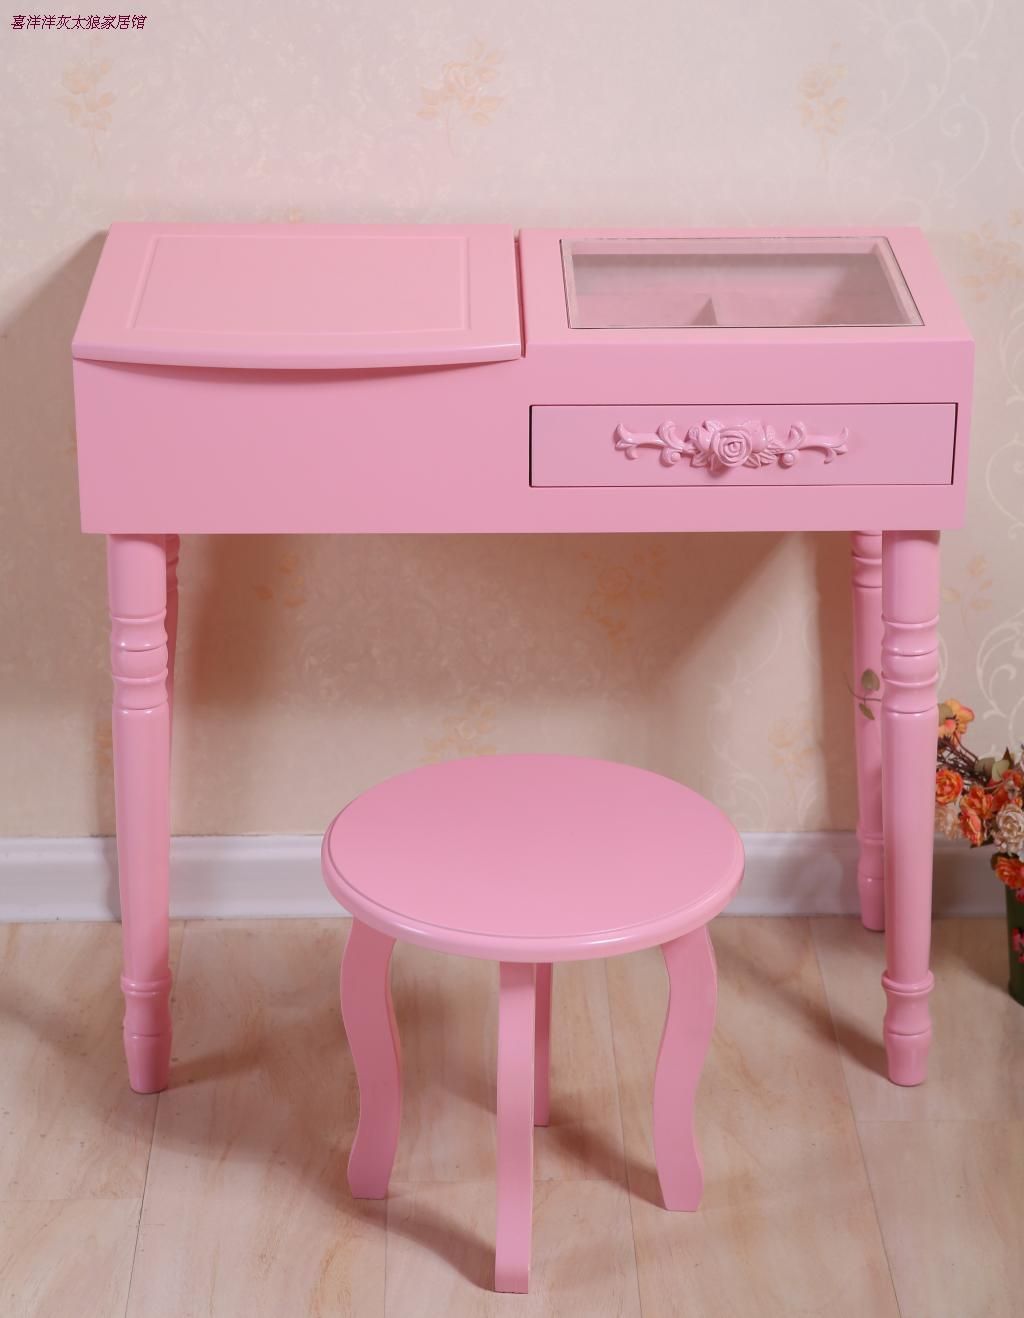 Cosmetic Table For Sale Minimalist Dressing Table Makeup Or End 11 11 2018 2 15 Pm